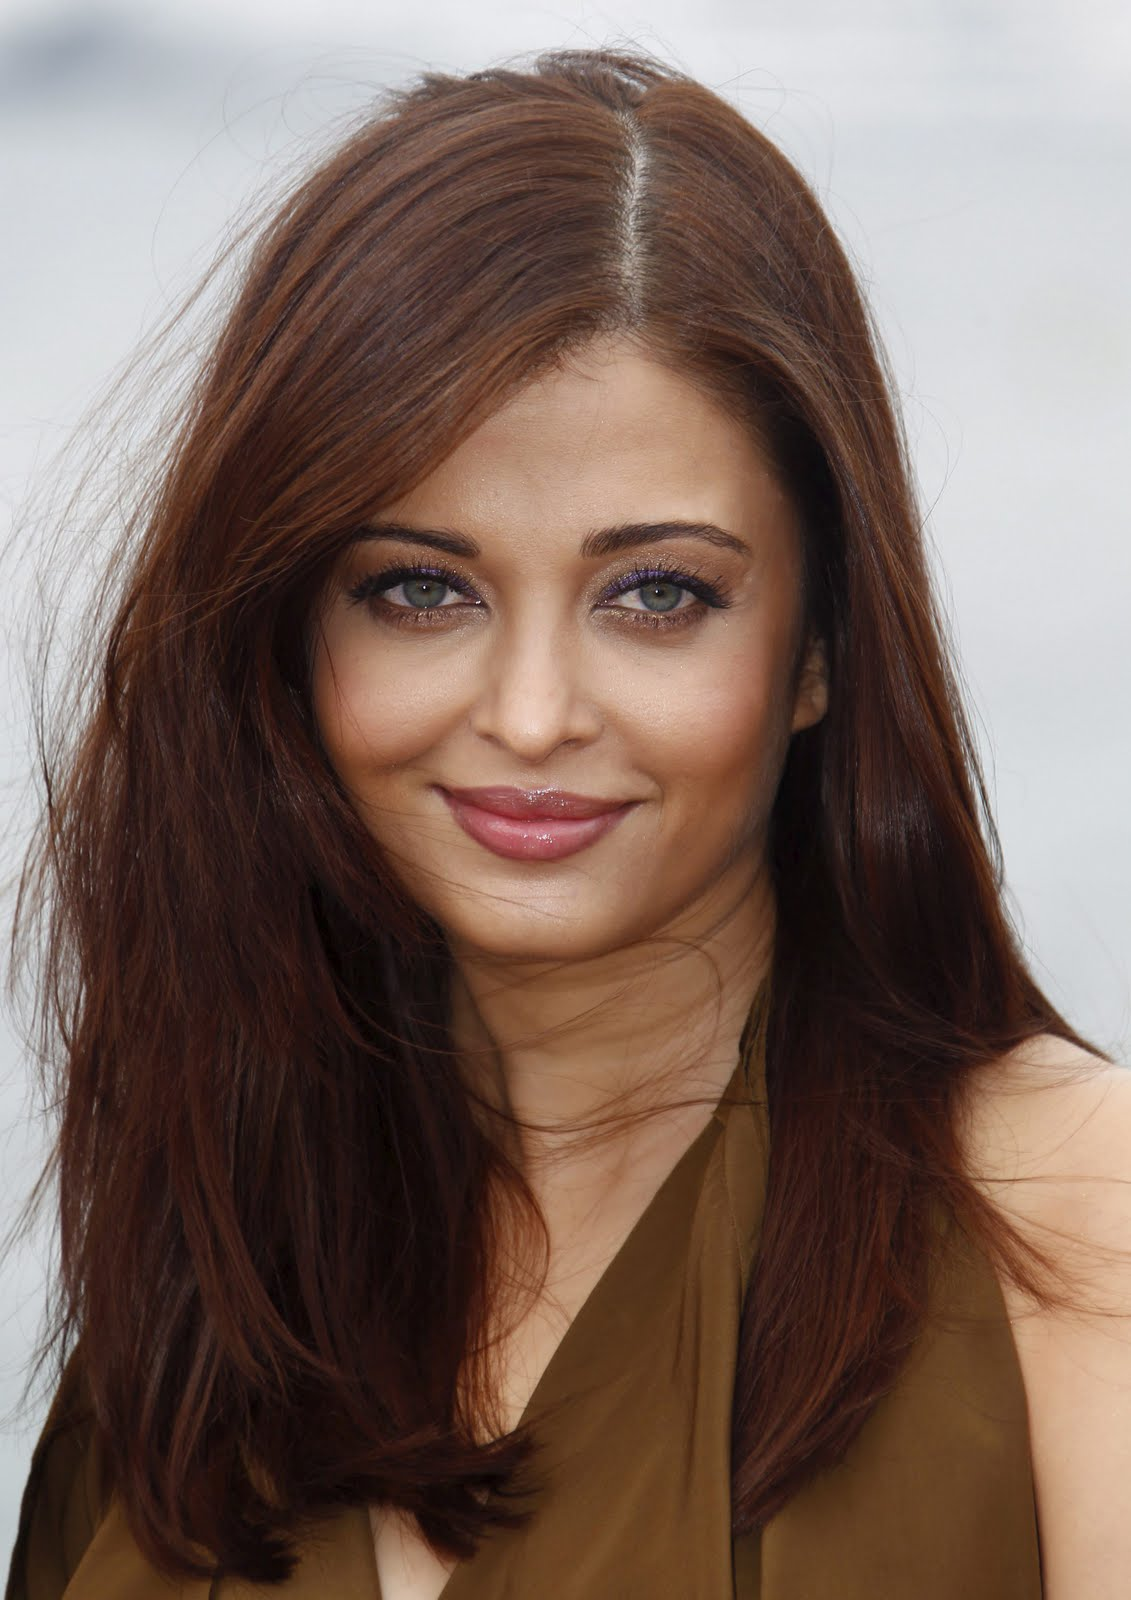 Bollywood actress aishwarya rai bachchan heroine movie - Aishwarya rai coup de foudre a bollywood ...